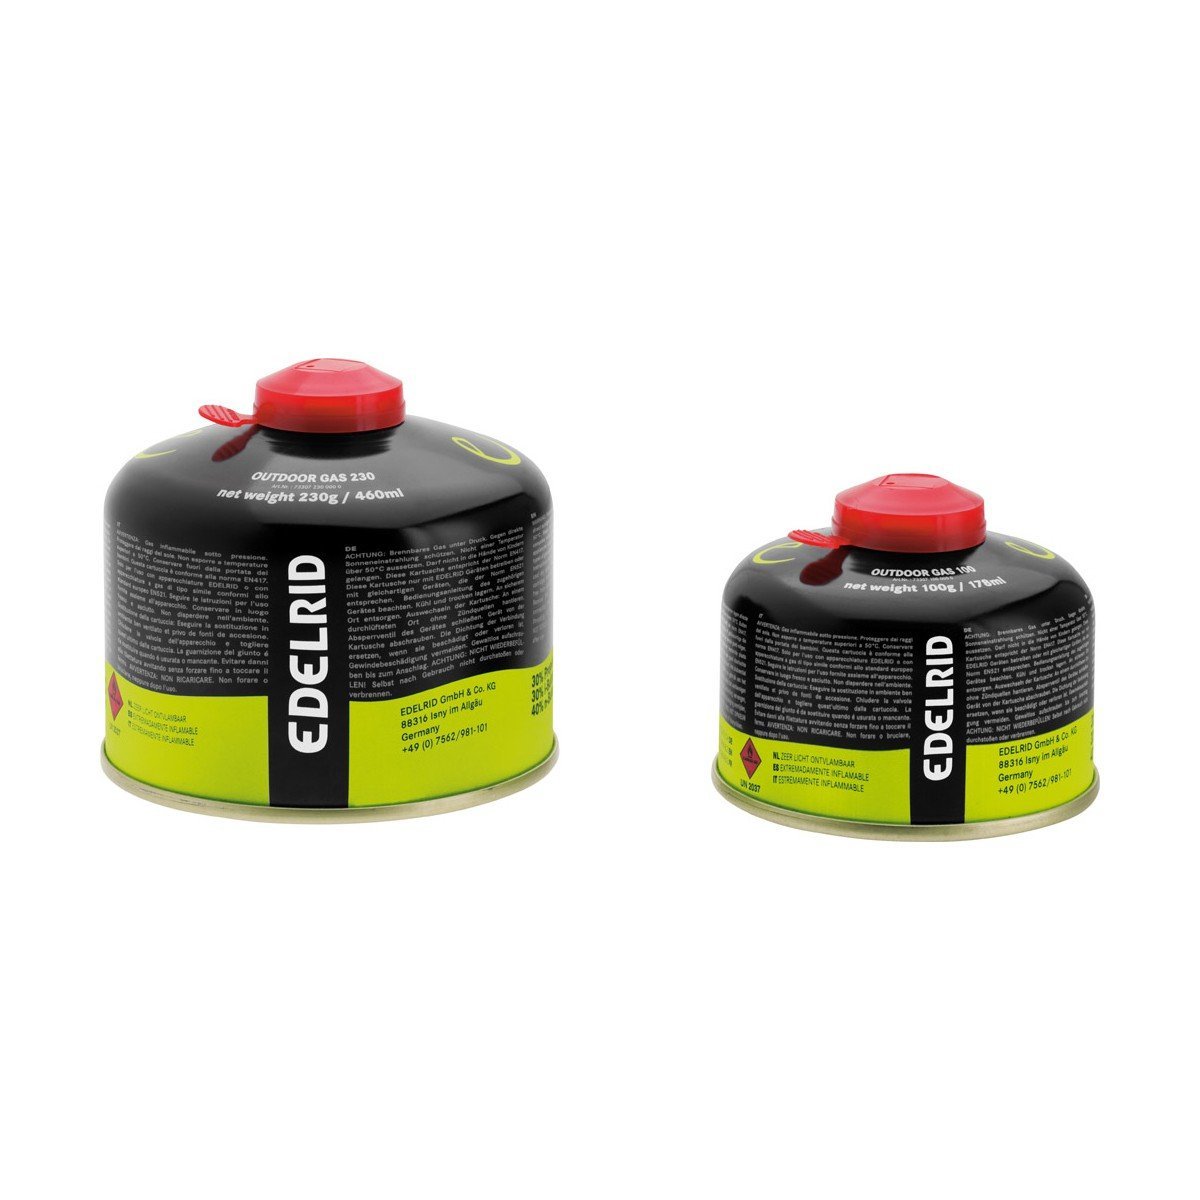 Edelrid Outdoor Gas 450, Groesse 100g